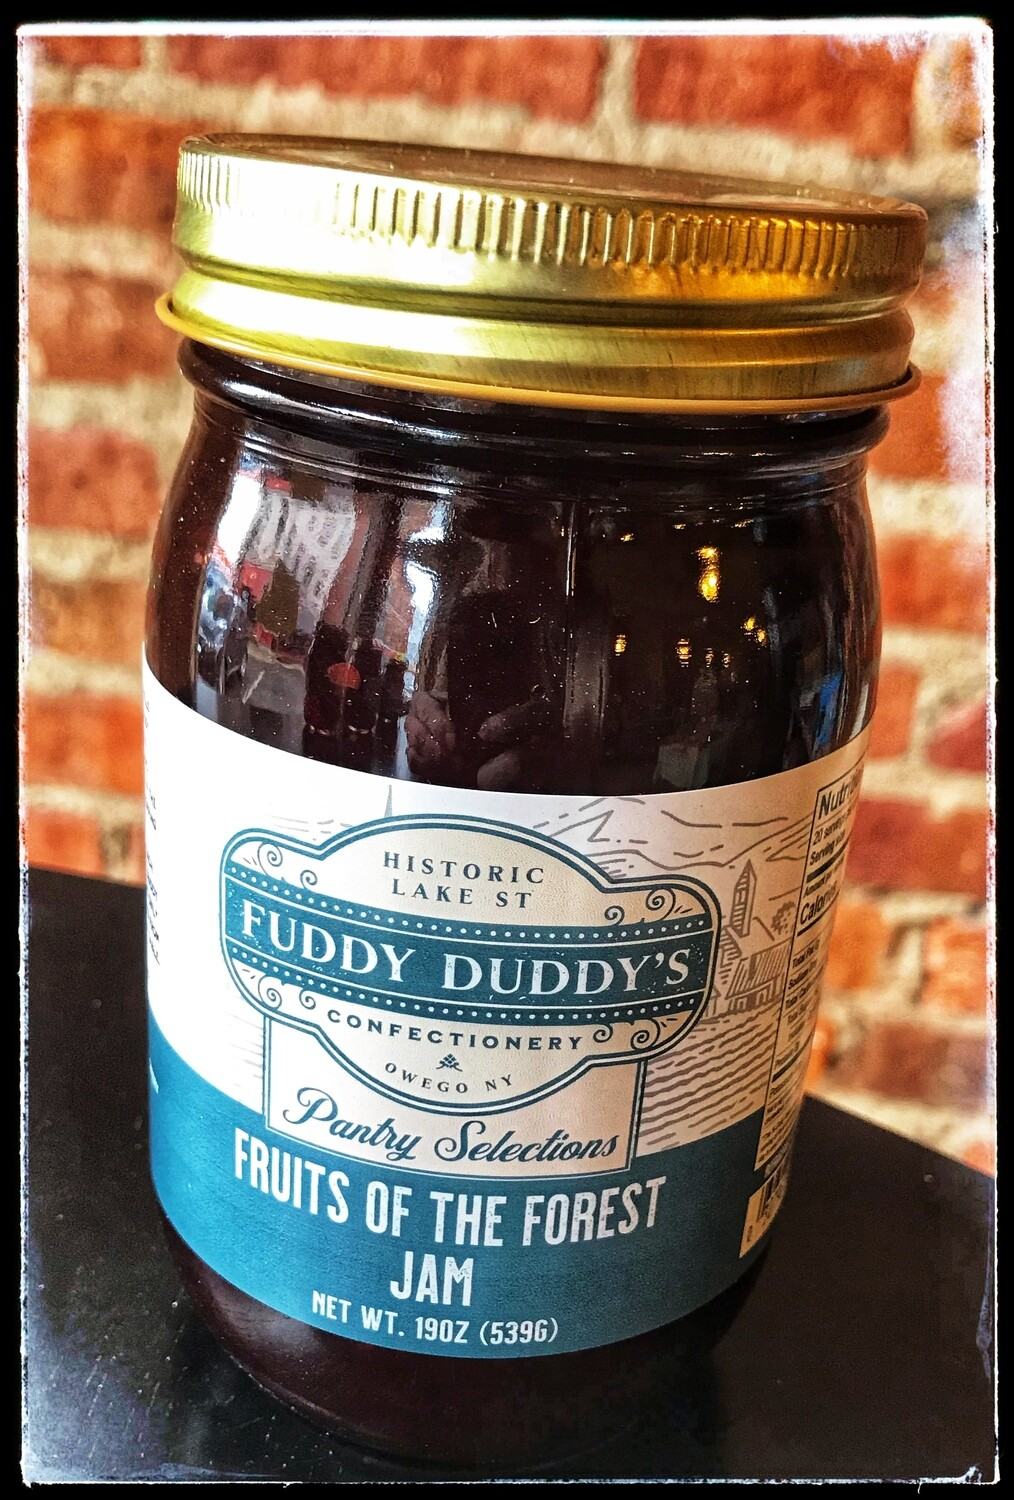 Fuddy Duddy's Fruits of the Forest Jam